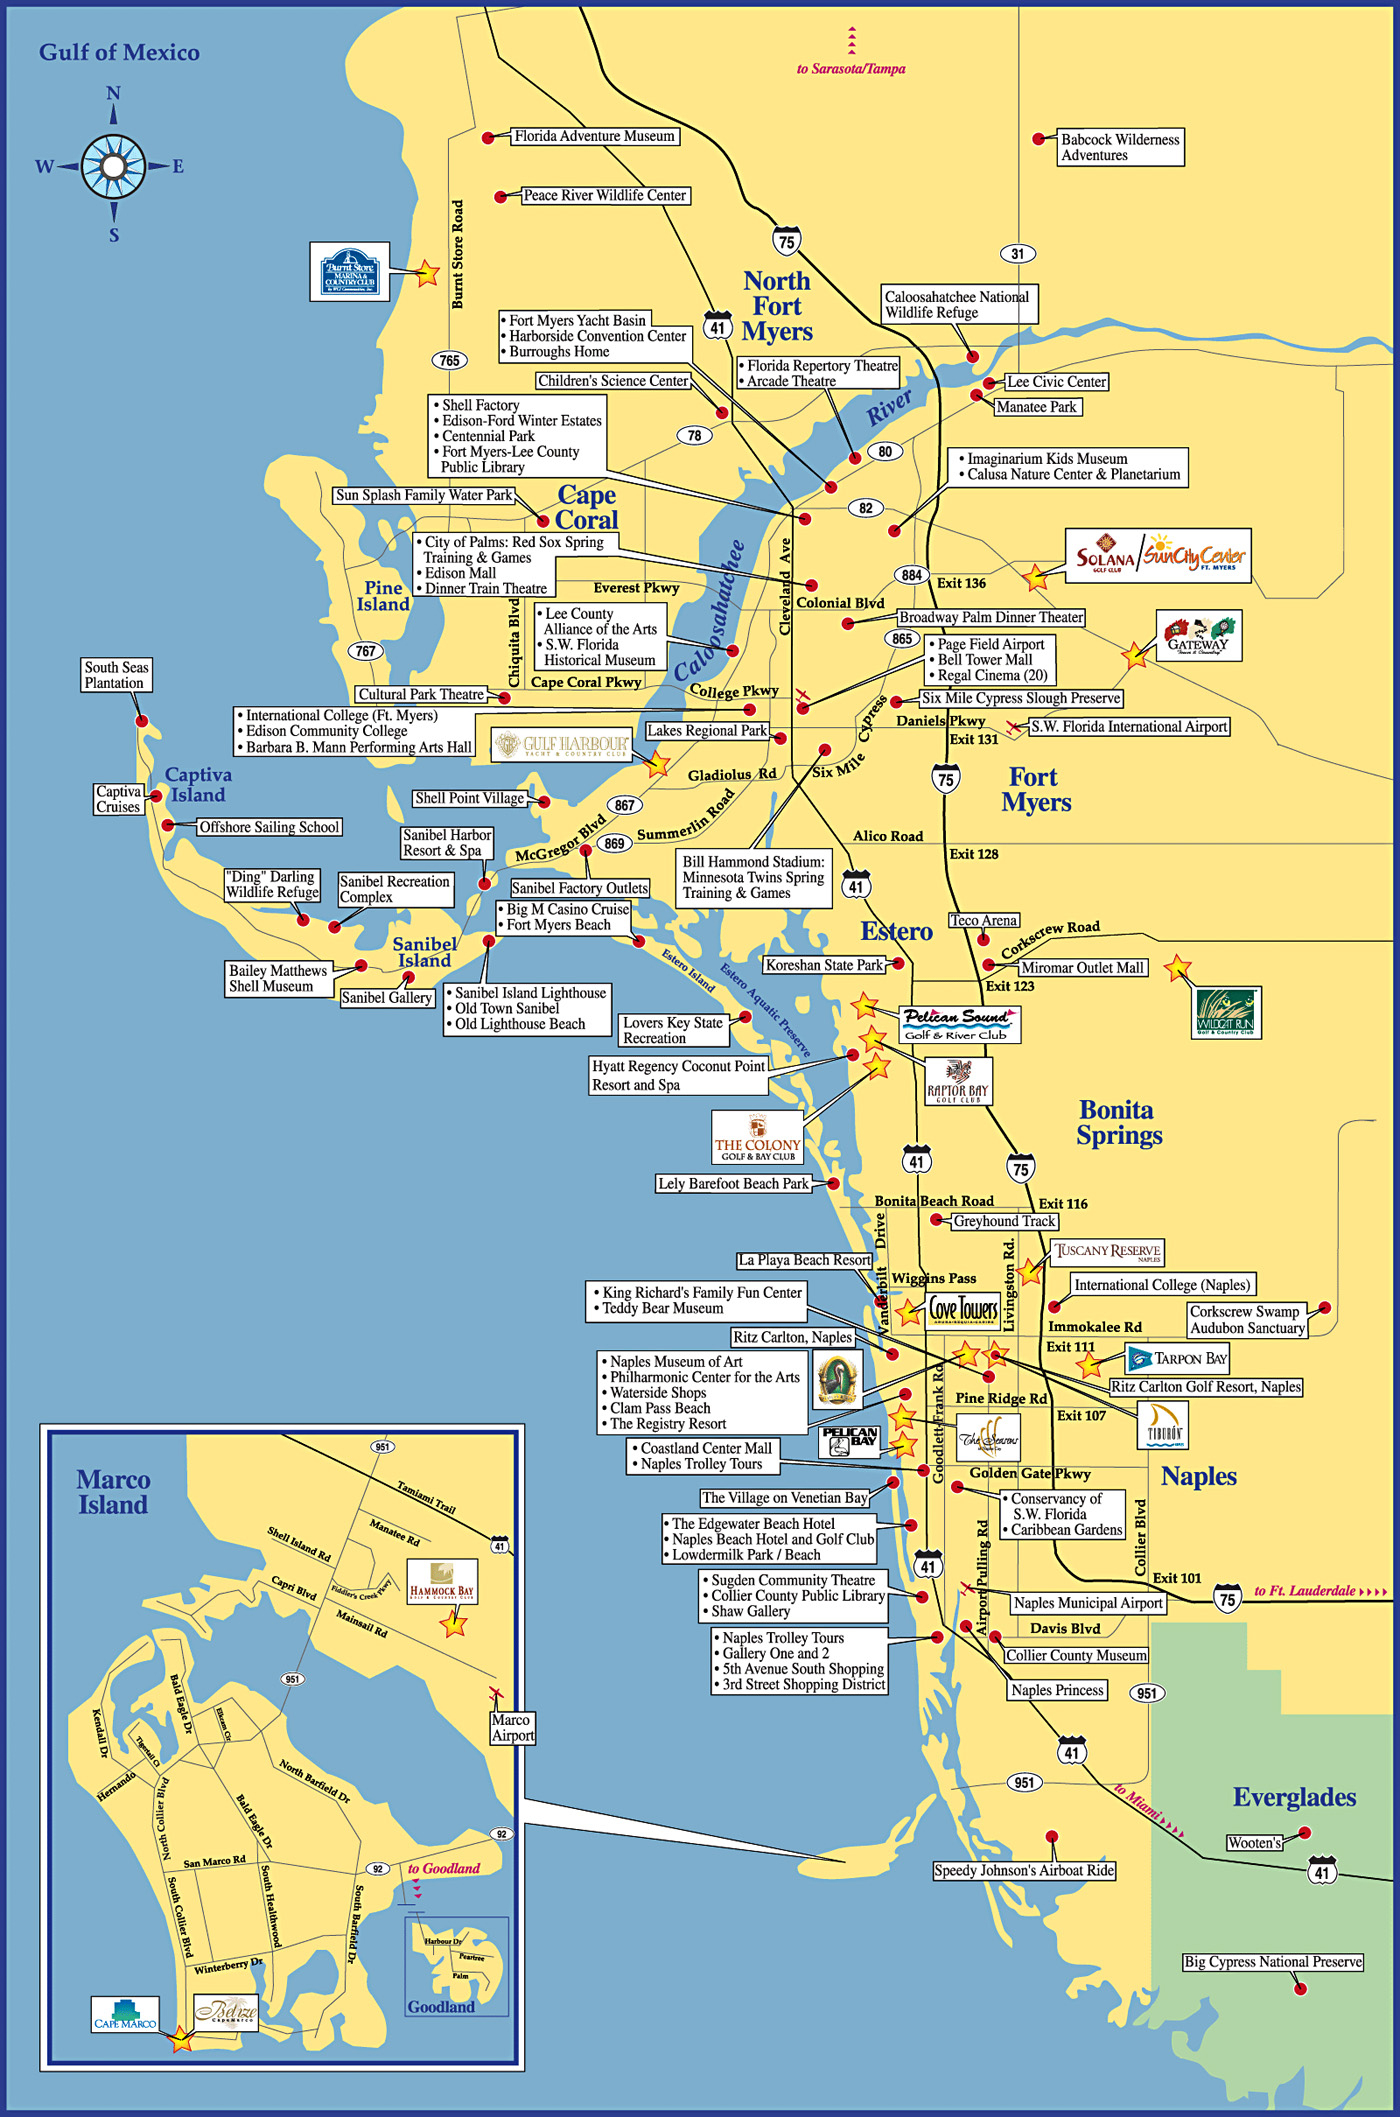 Fort Meyers Tourist Map - Fort Meyers Florida • Mappery - Fort Meyer Florida Map